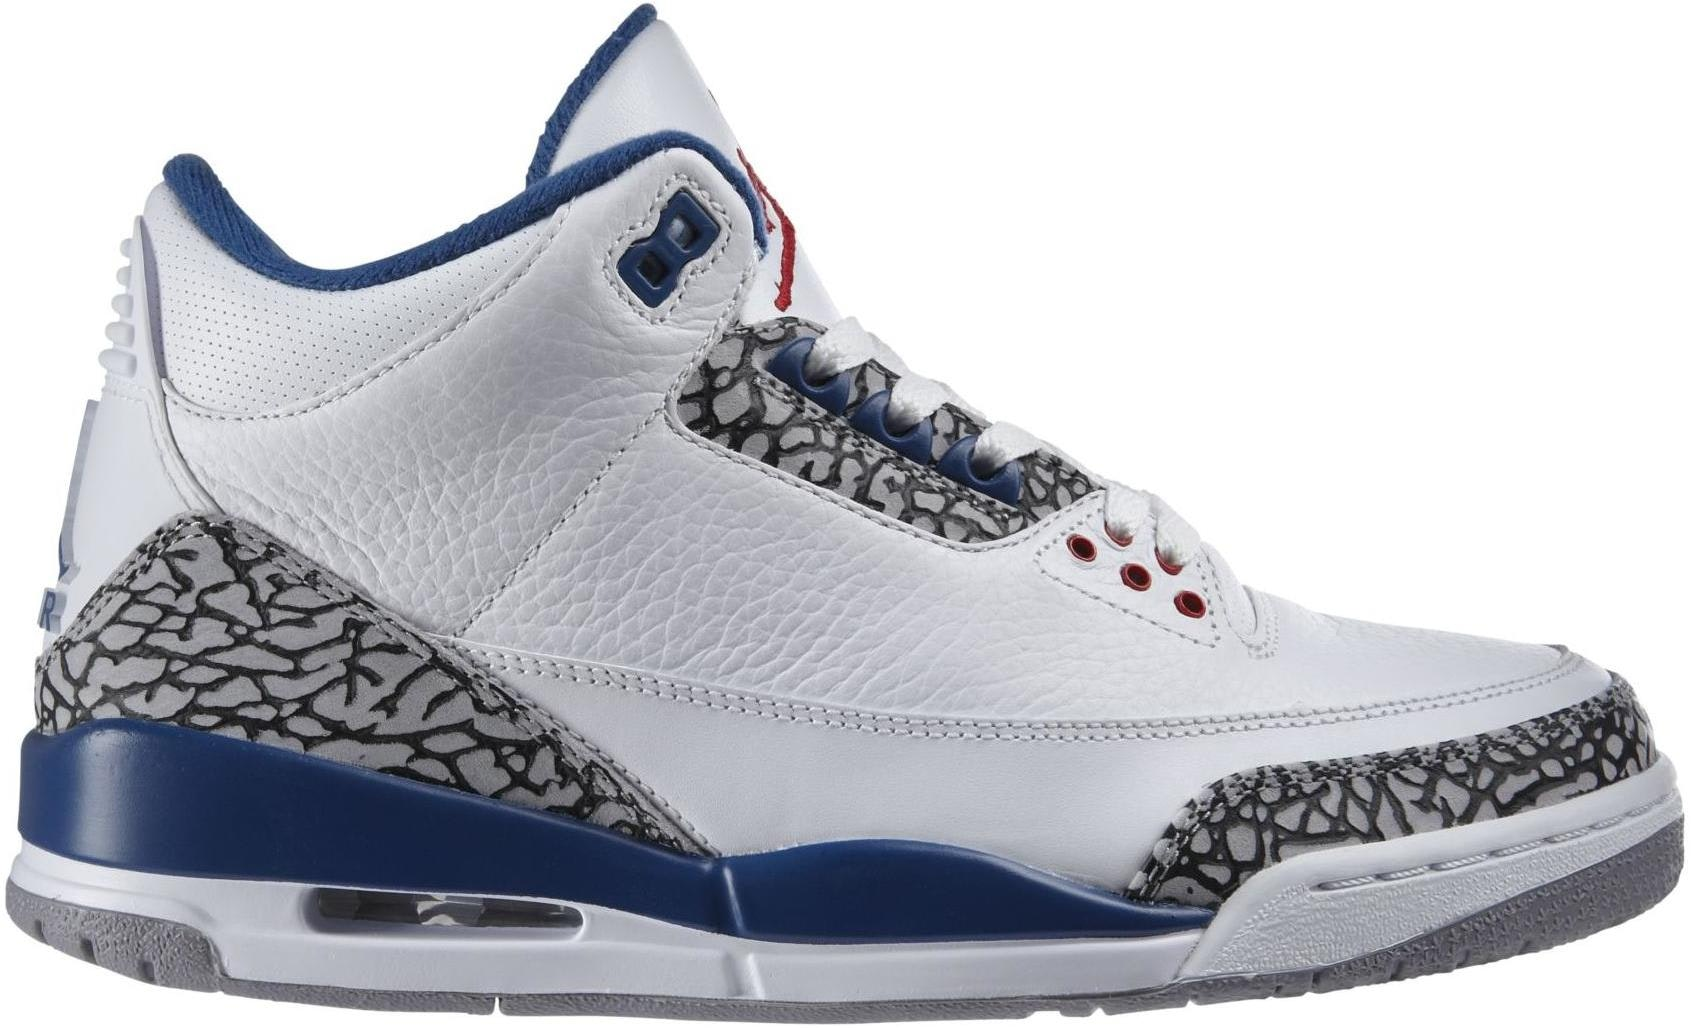 Jordan 3 Retro True Blue (2009)